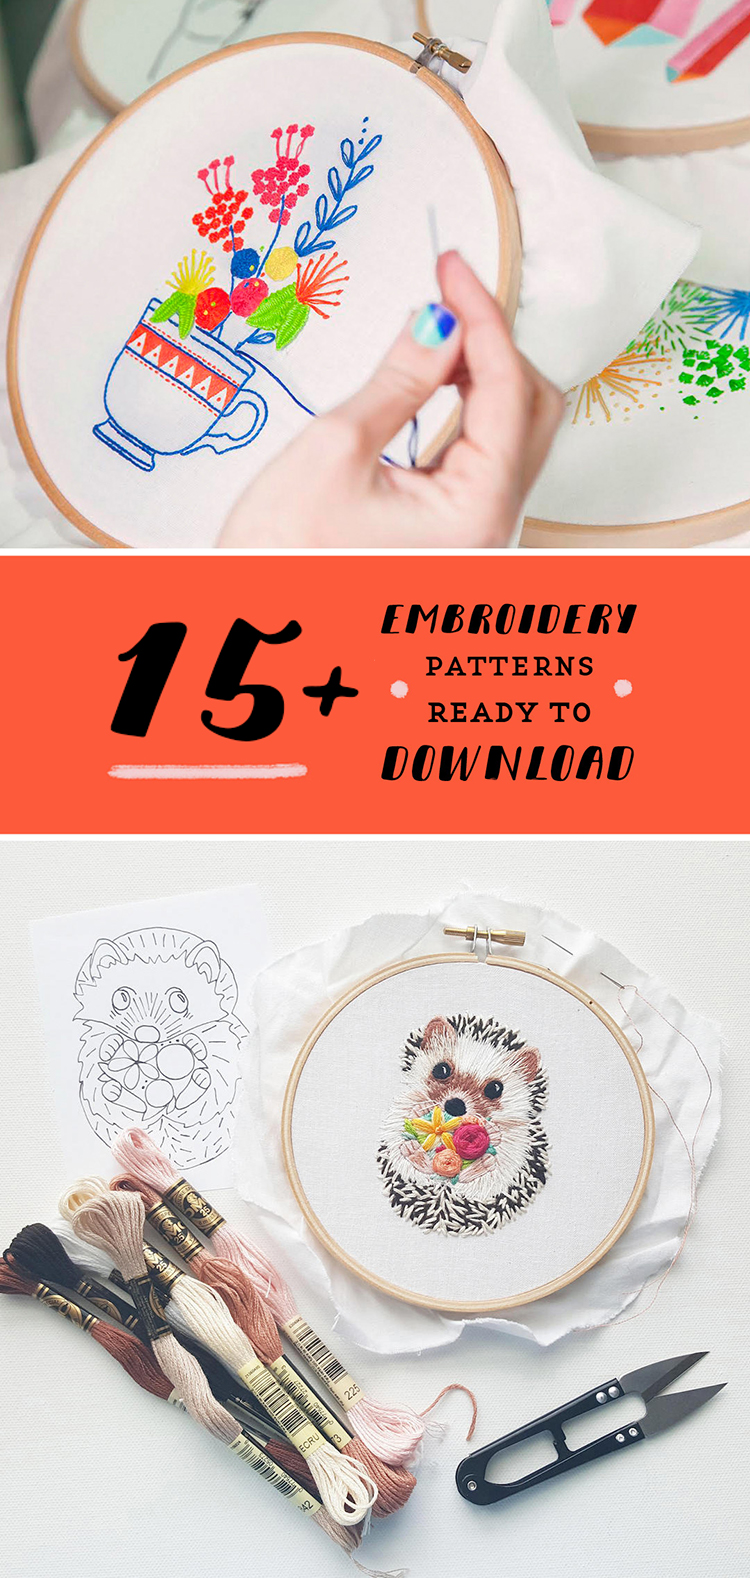 Contemporary hand embroidery patterns